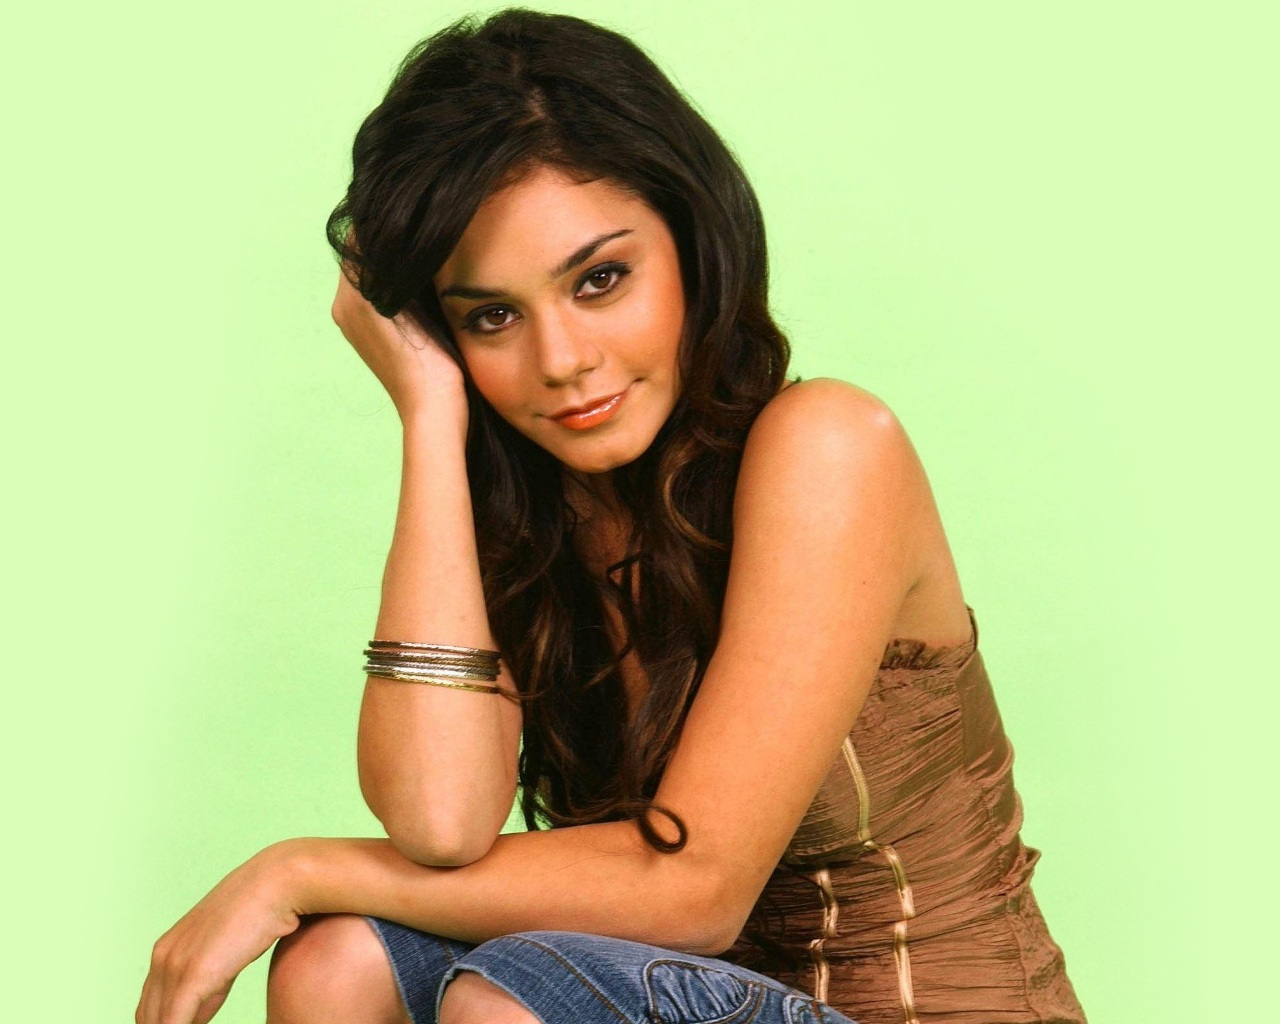 vanessa hudgens hot hd - photo #17